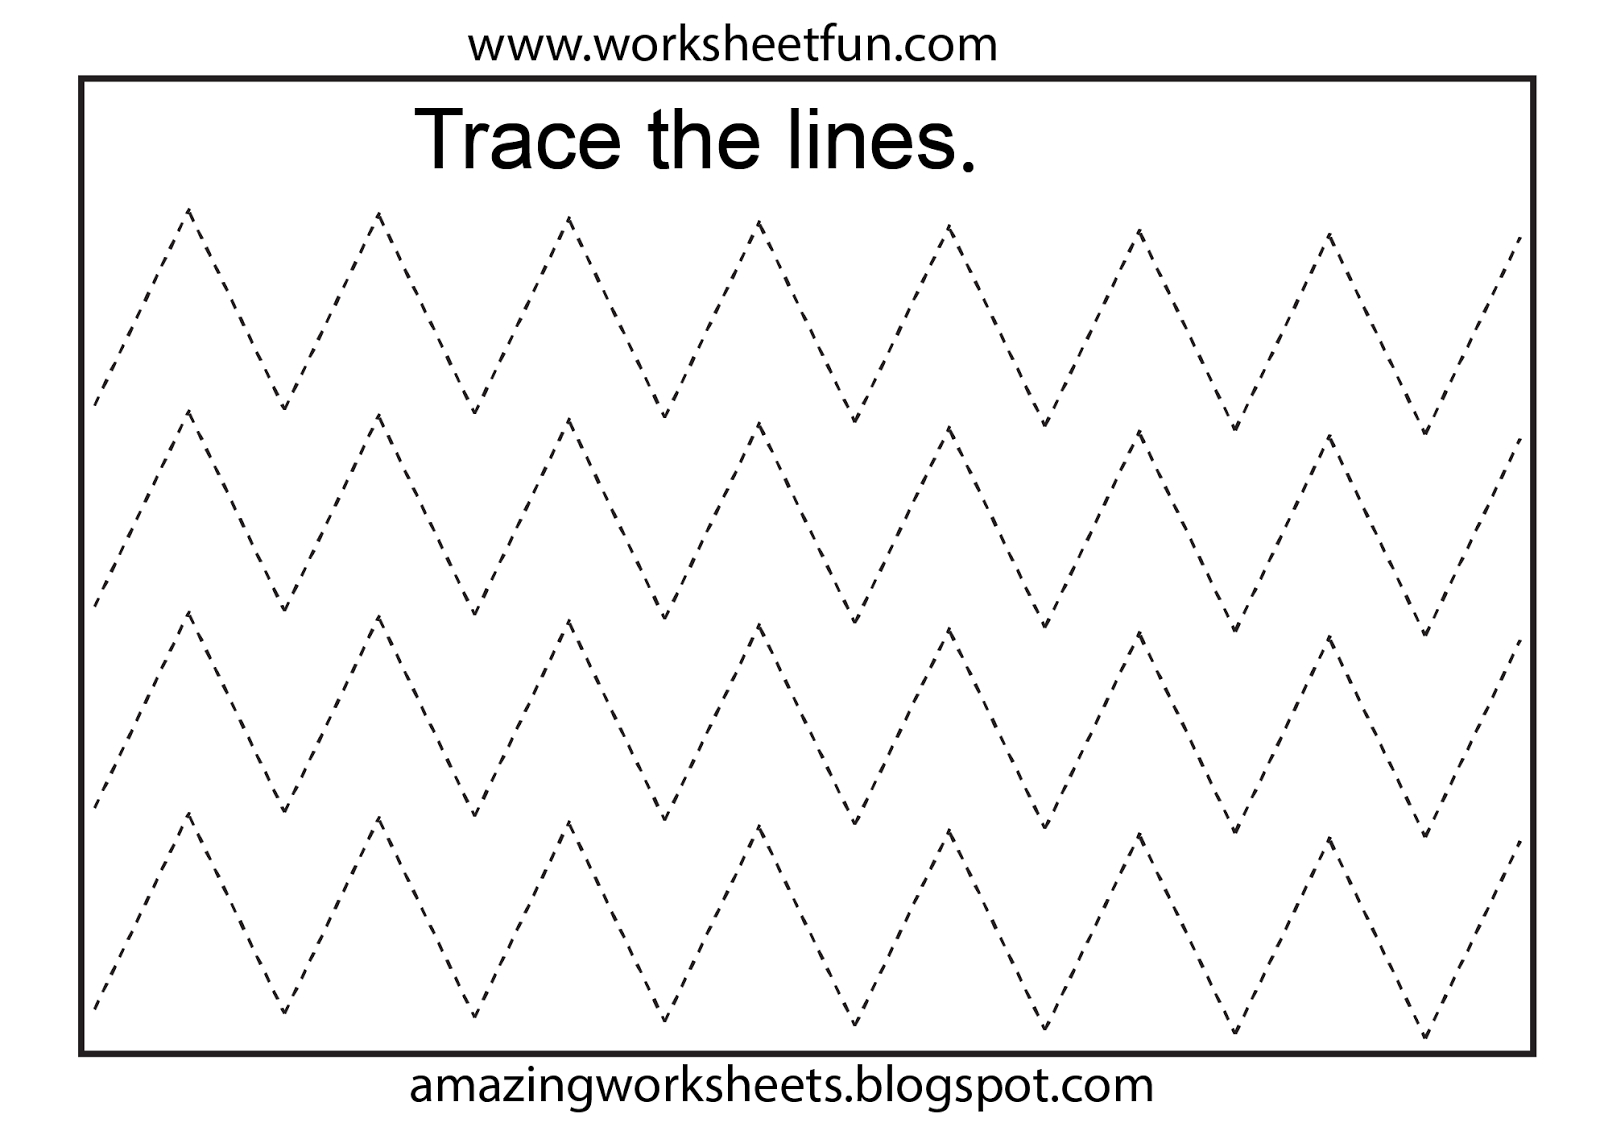 Free Printable Tracing Worksheets Preschool | Preschool Worksheets | Fine Motor Skills Worksheets And Printables